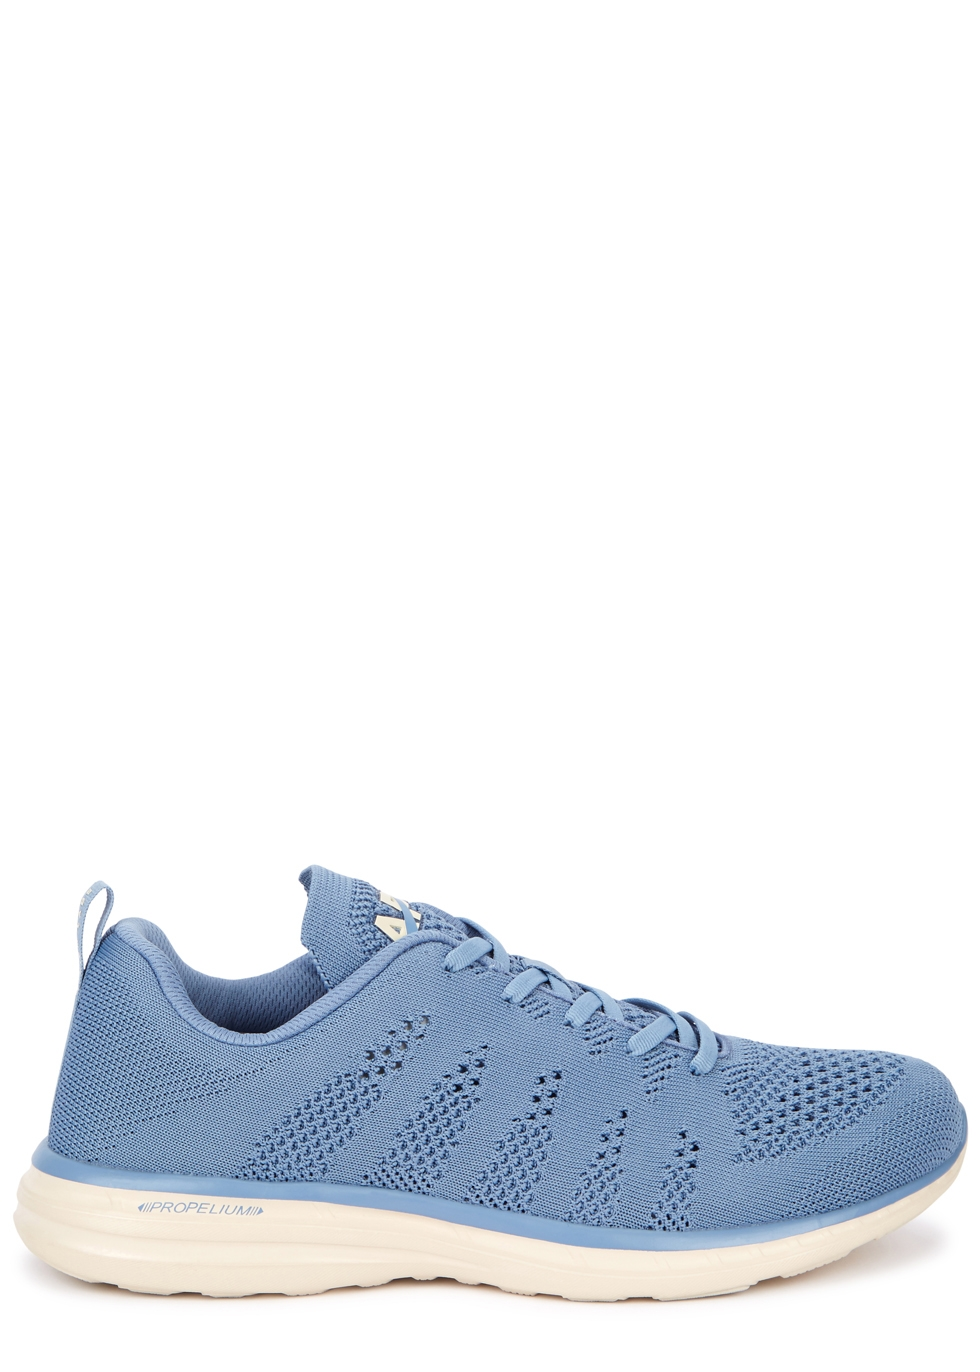 APL ATHLETIC PROPULSION LABS TECHLOOM PRO BLUE KNITTED TRAINERS